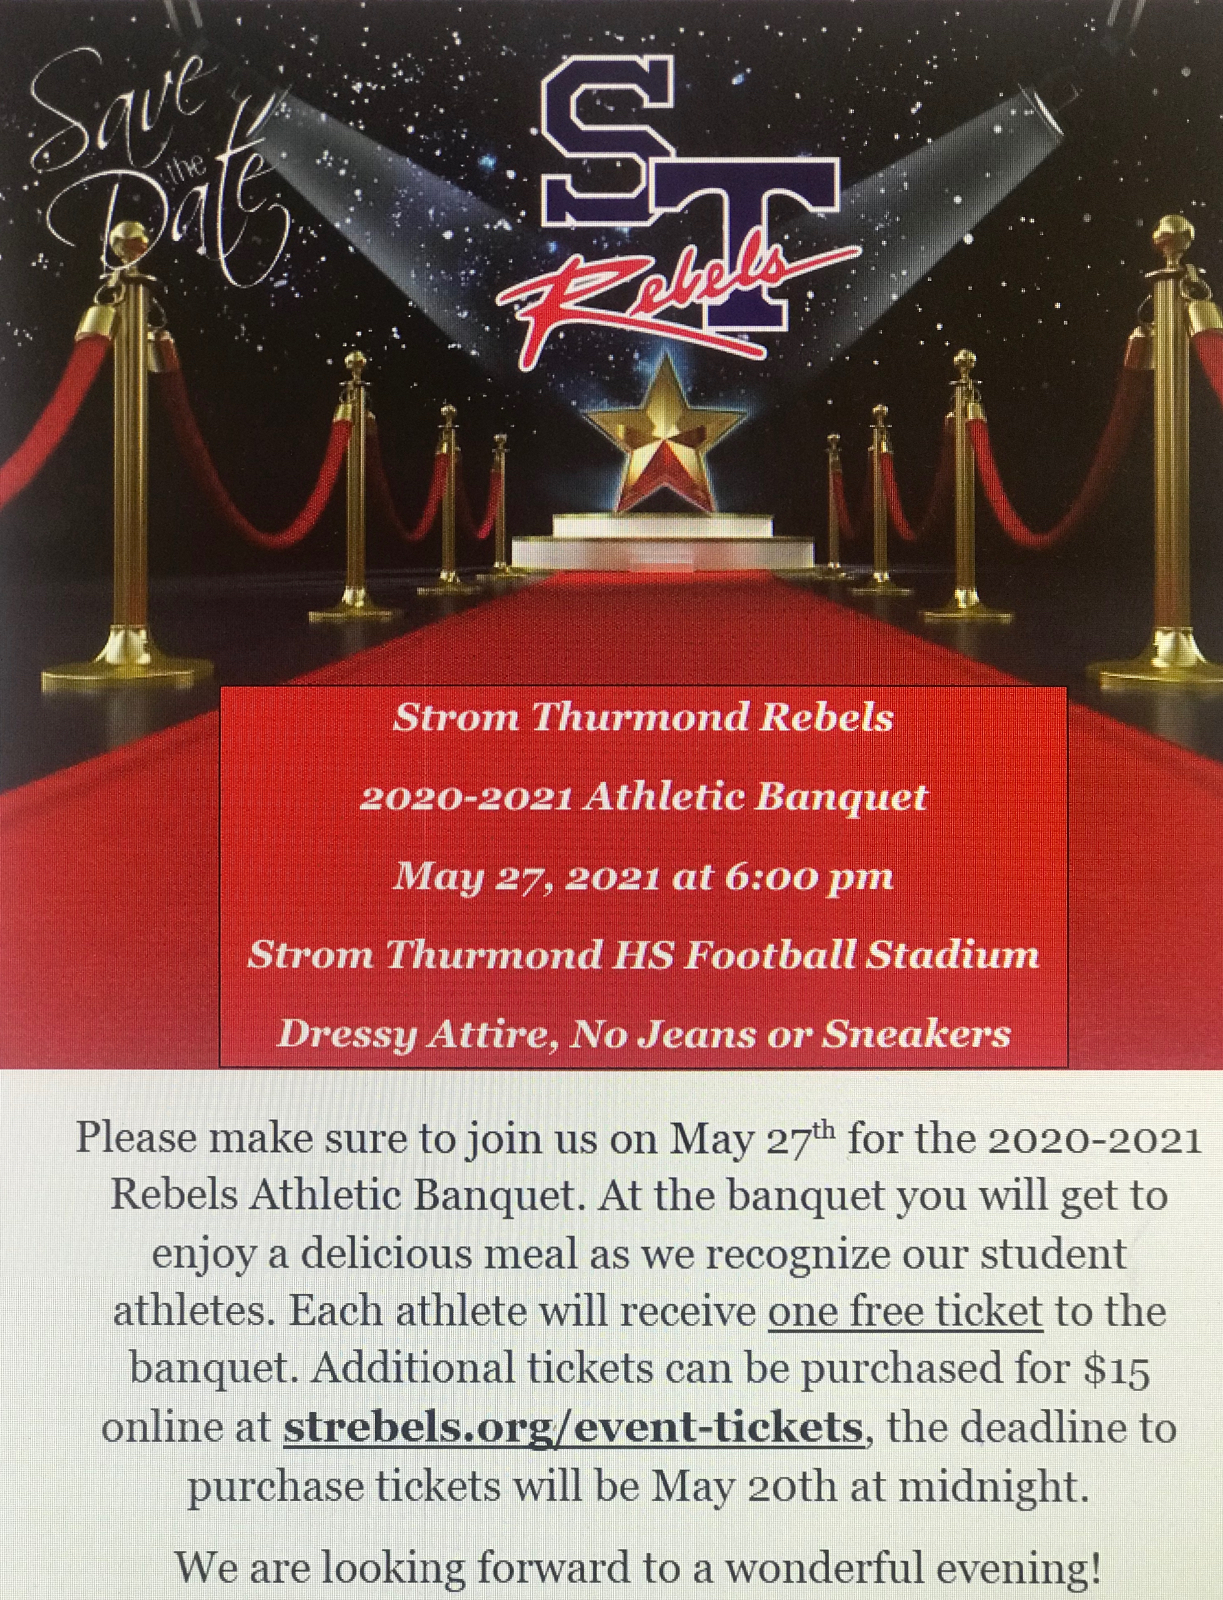 2020-2021 Strom Thurmond Rebels Athletic Banquet to take place May 27th at 6:00 pm